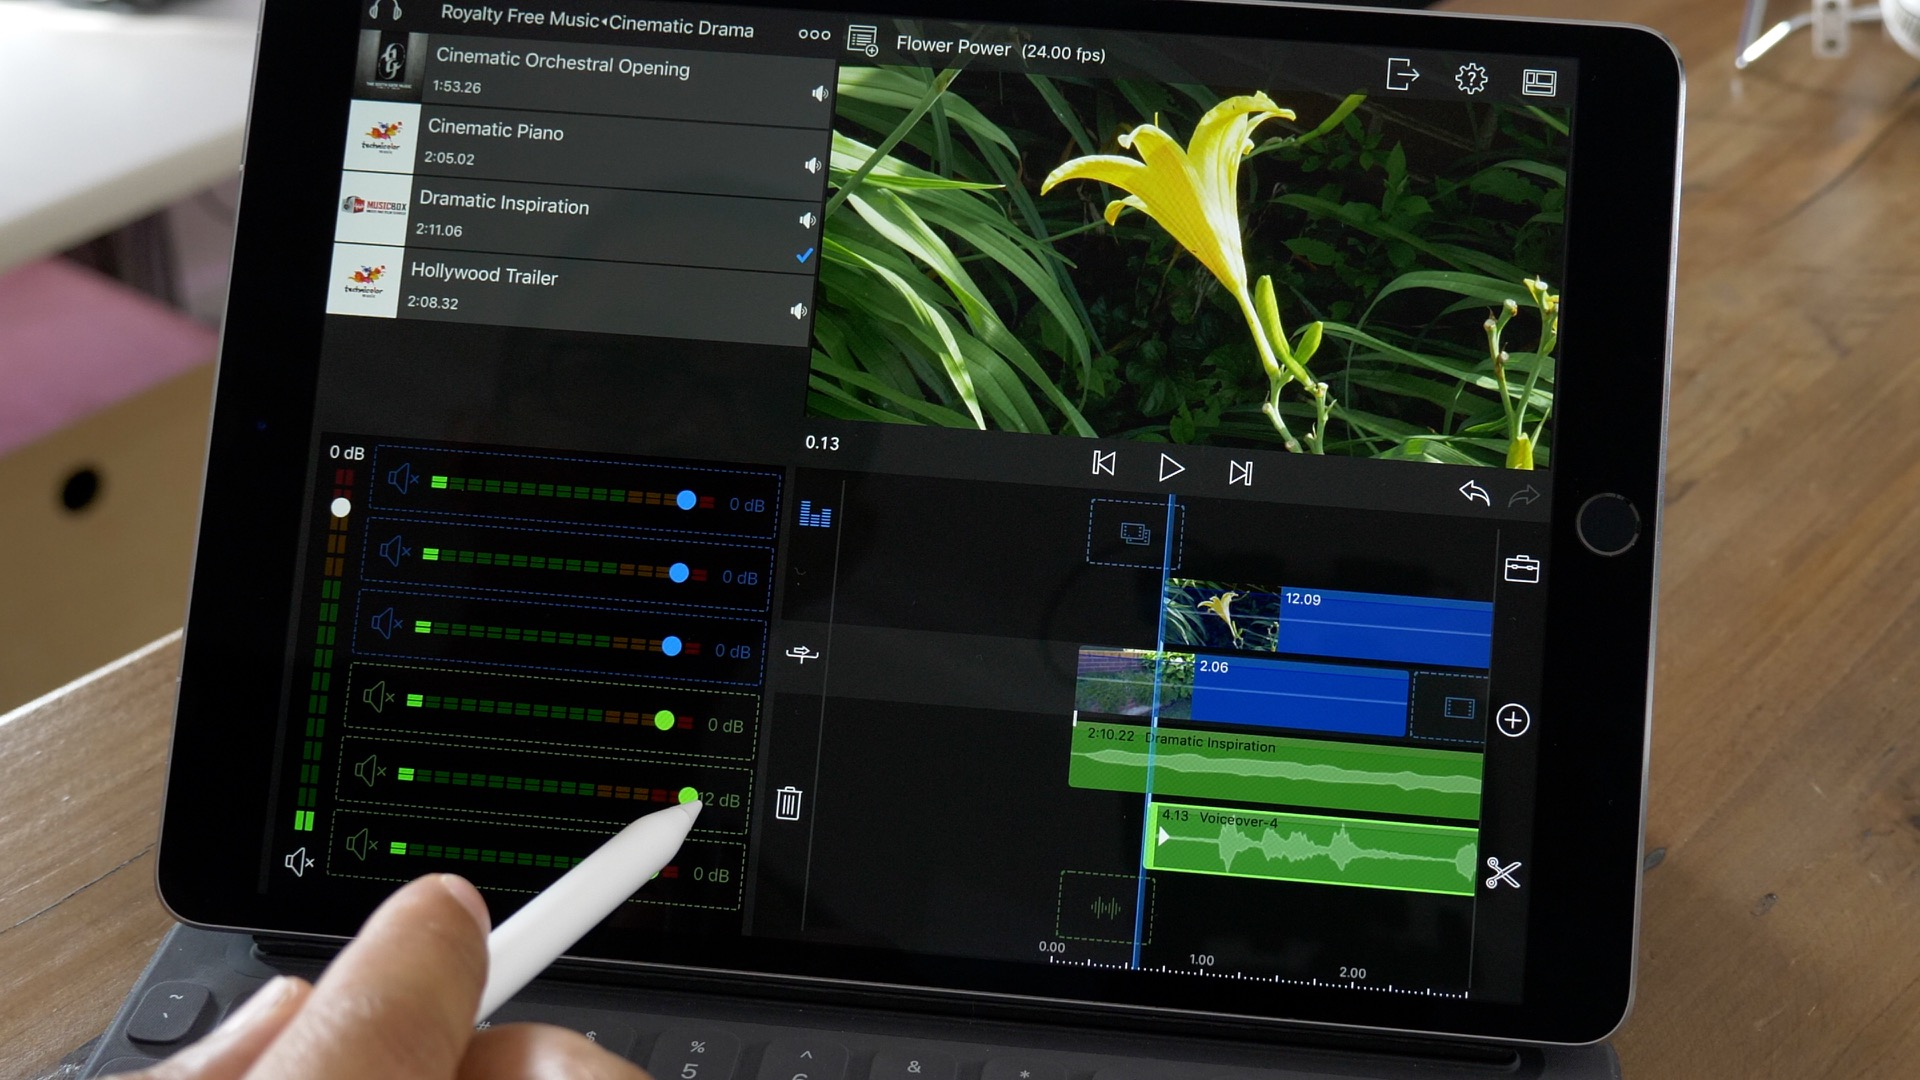 Best way to edit youtube videos on ipad pro